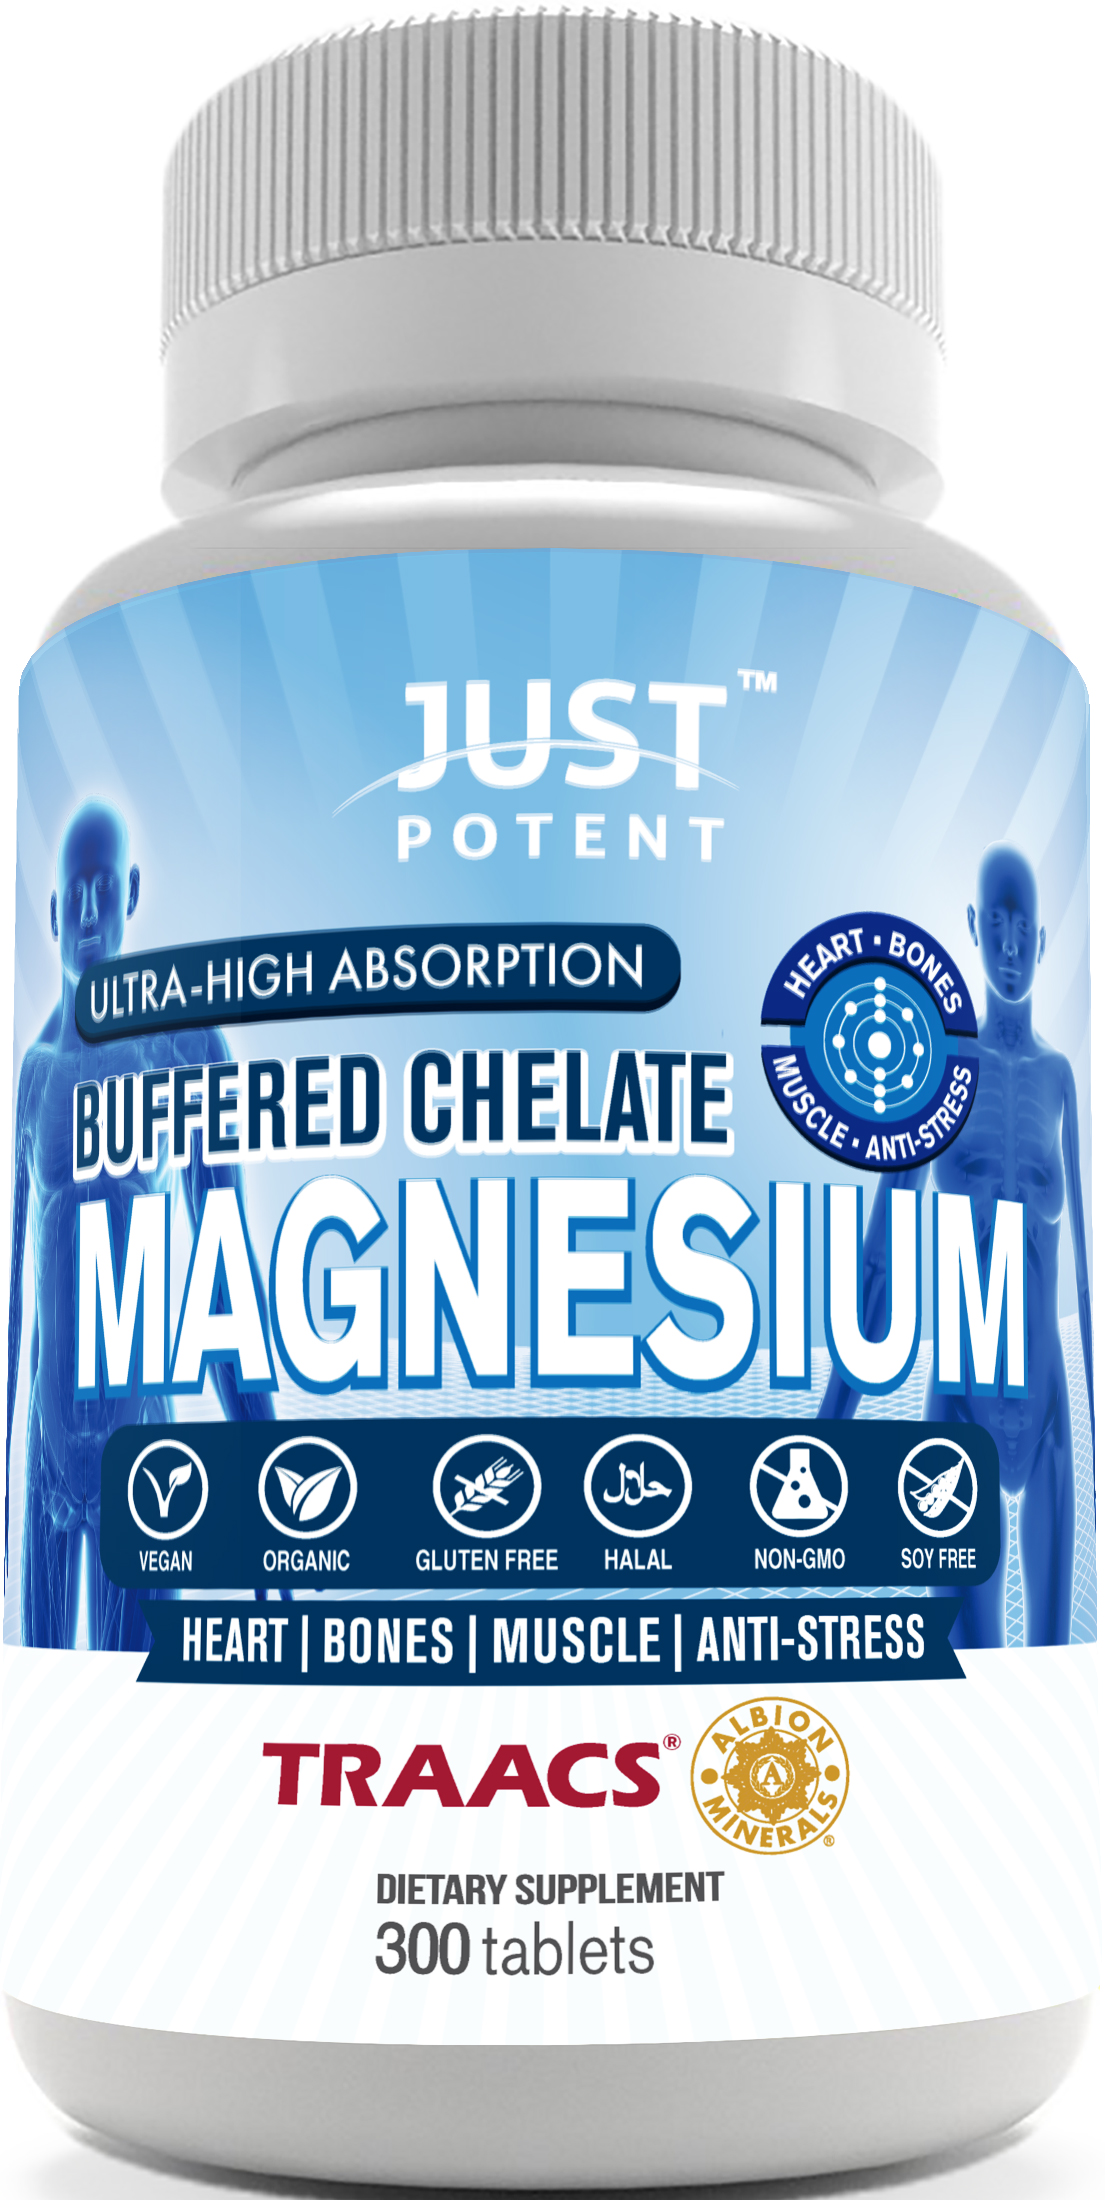 Just Potent Magnesium Supplement